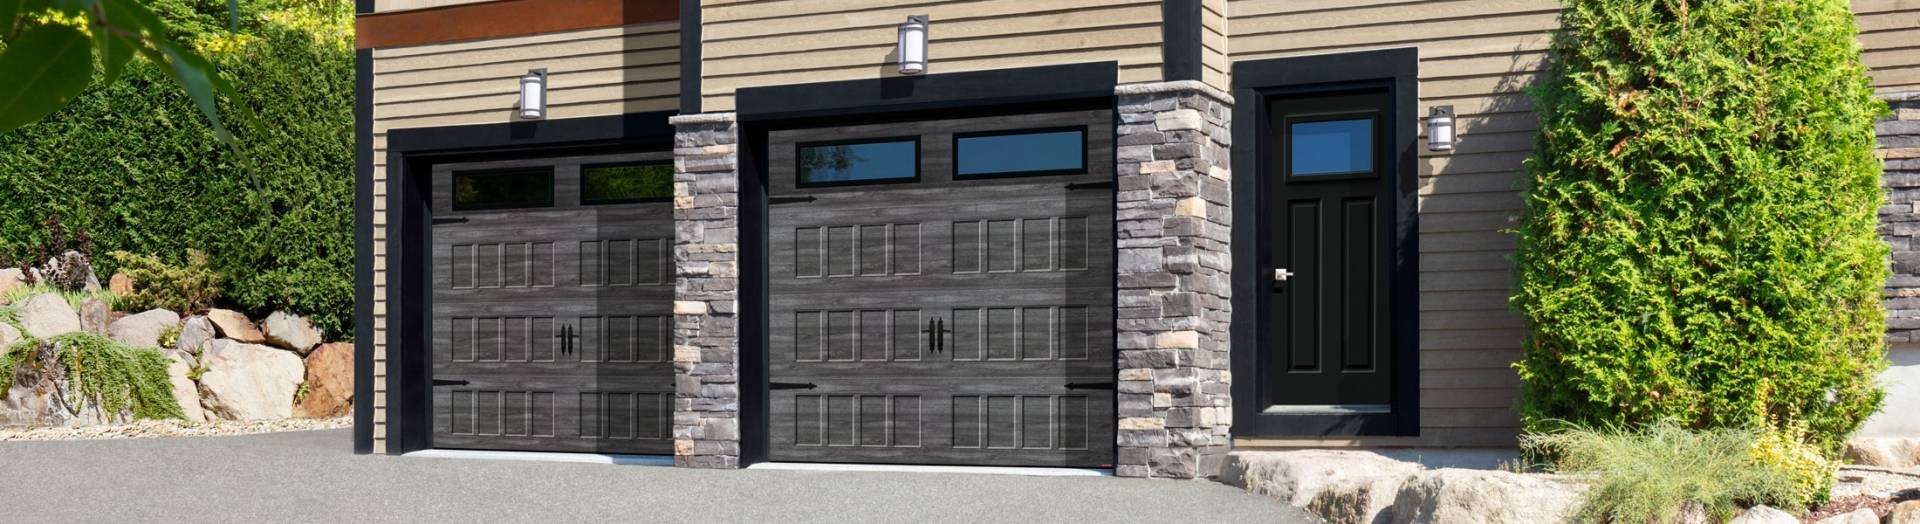 Carriage House style house with 2 Standard+ garage doors, Shaker-Flat XS design in the new Iron Ore Walnut colour